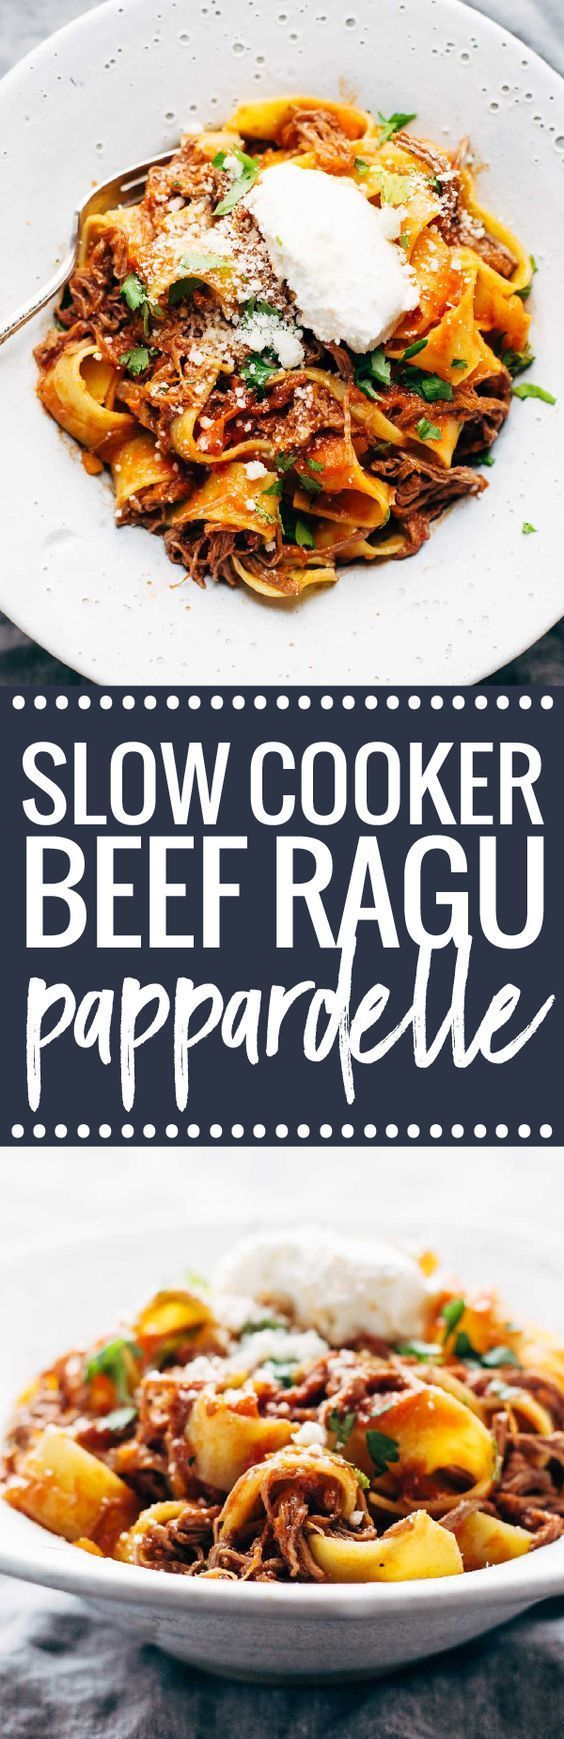 Slow Cooker Beef Ragu with Pappardelle - easy comfort food from the new Skinnytaste cookbook!